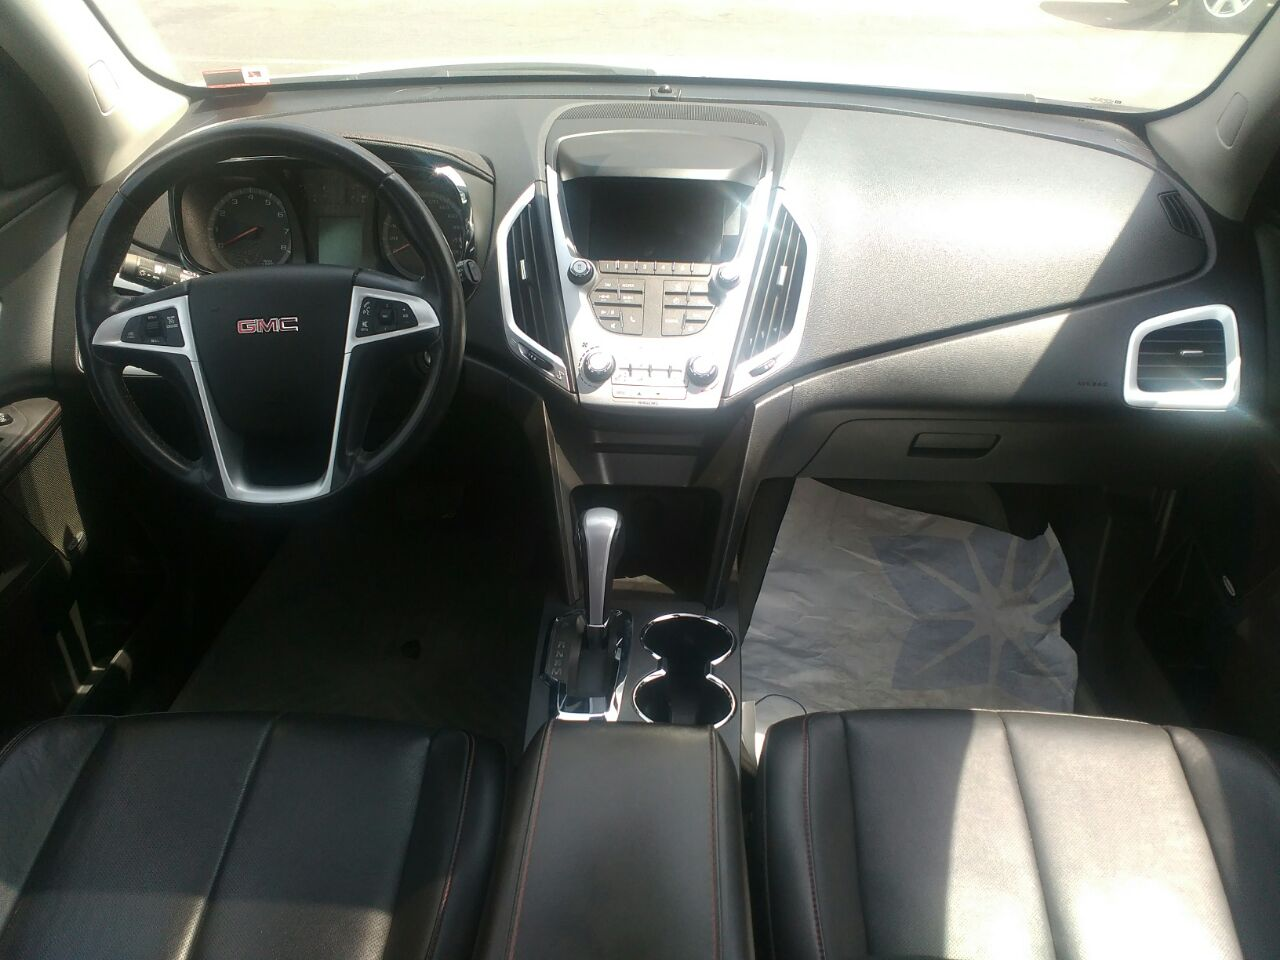 Used Gmc Terrain 2012 Car For Sale In Doha 697950